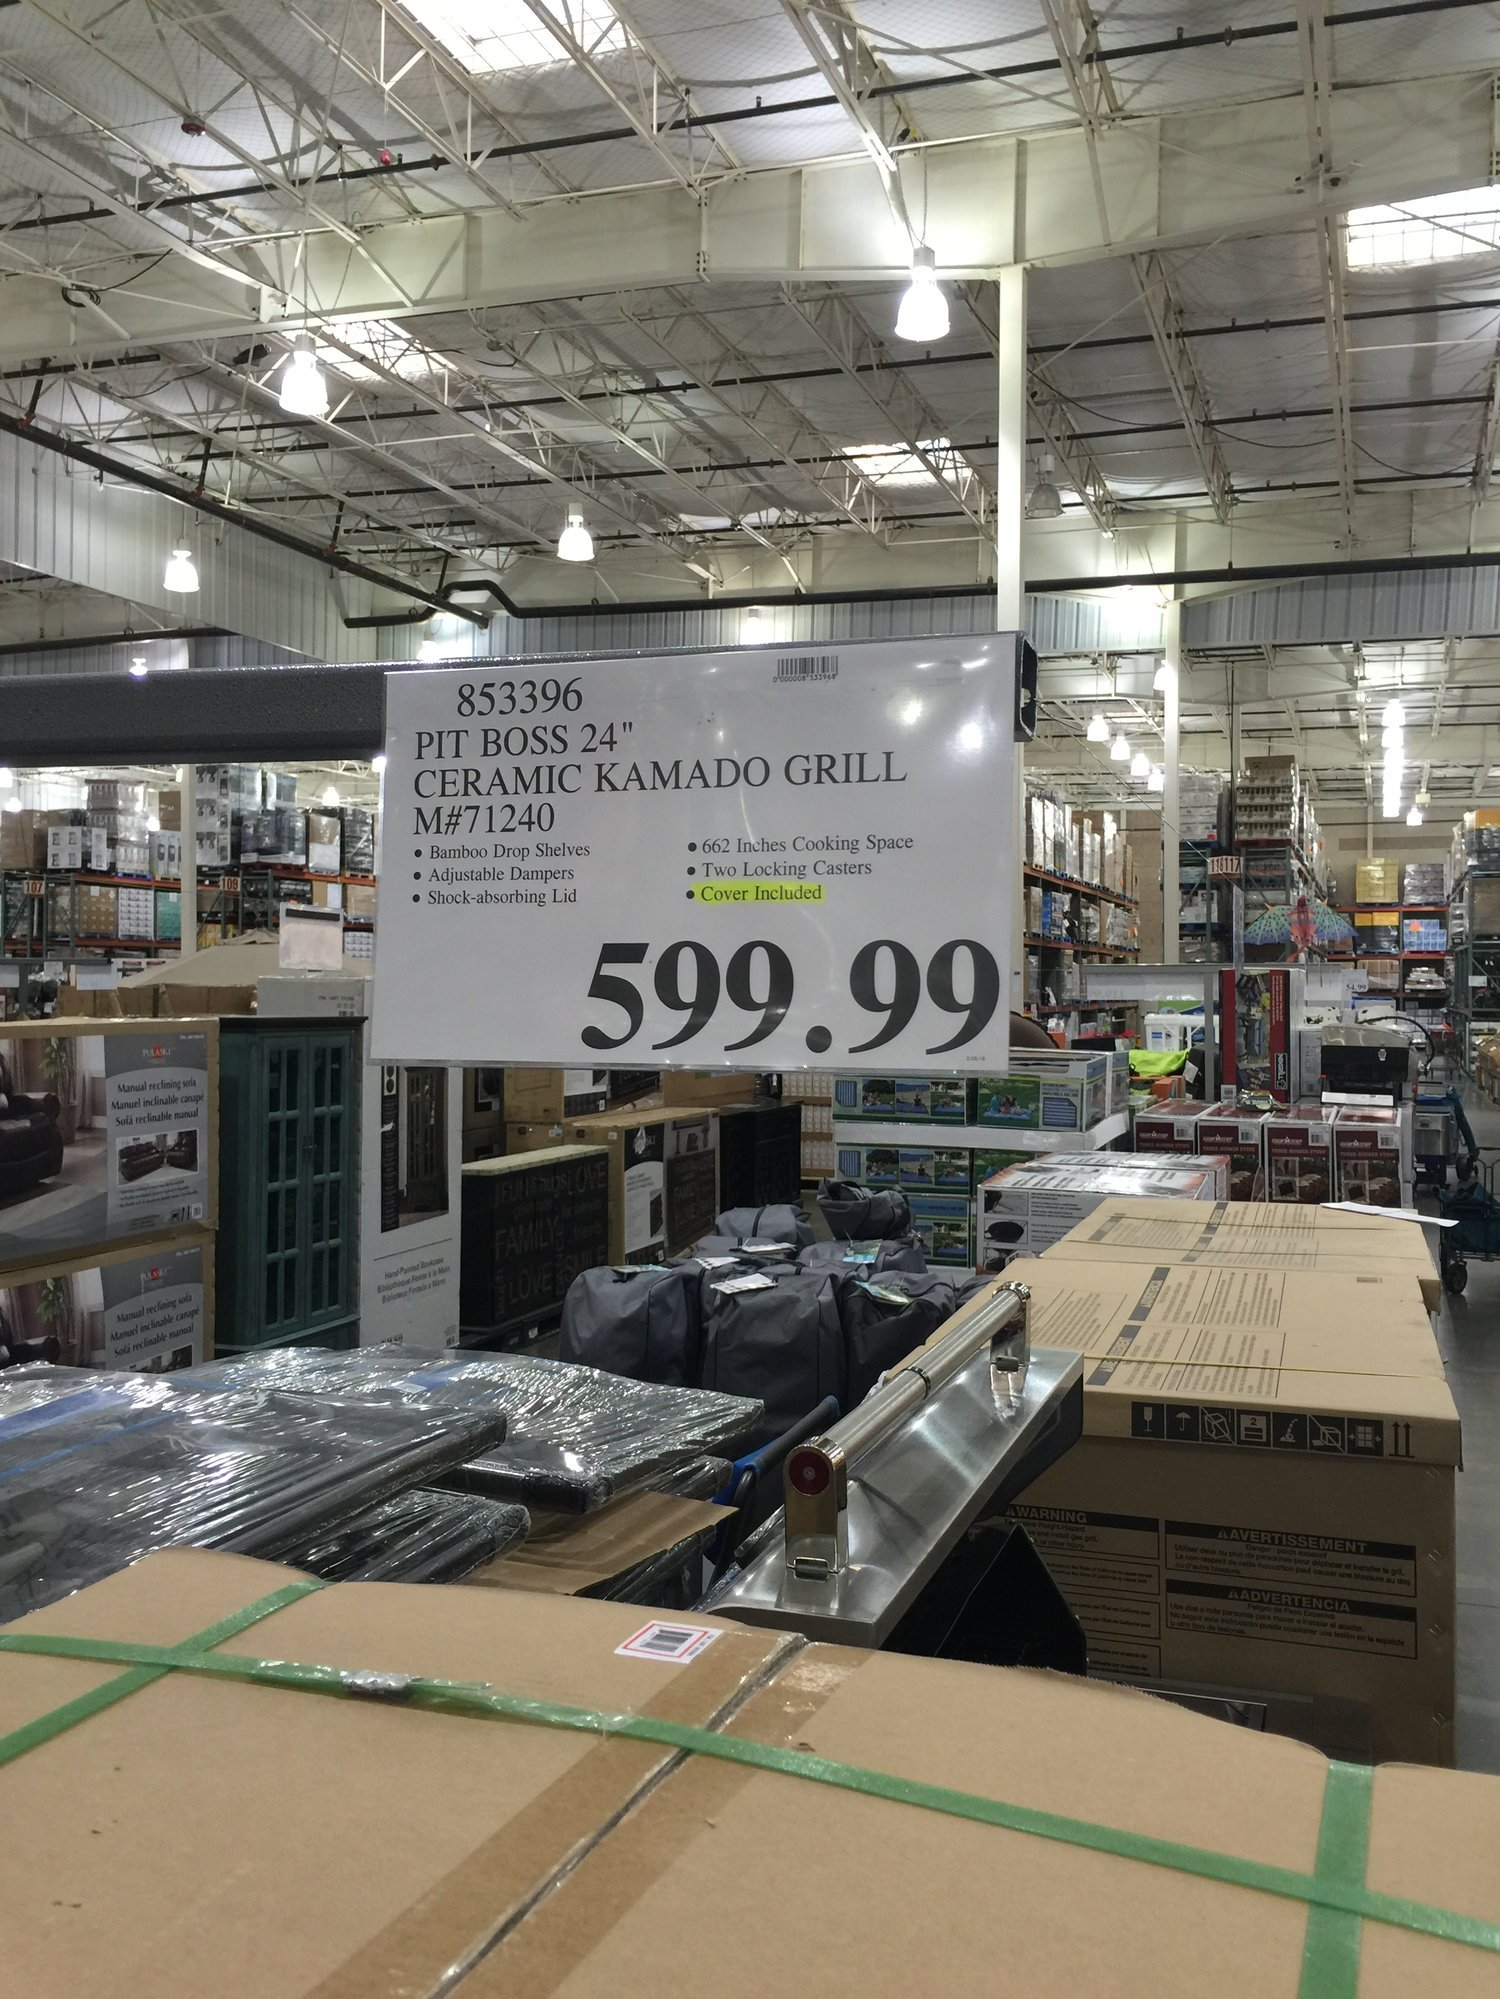 New knock off at Costco — Big Green Egg - EGGhead Forum - The